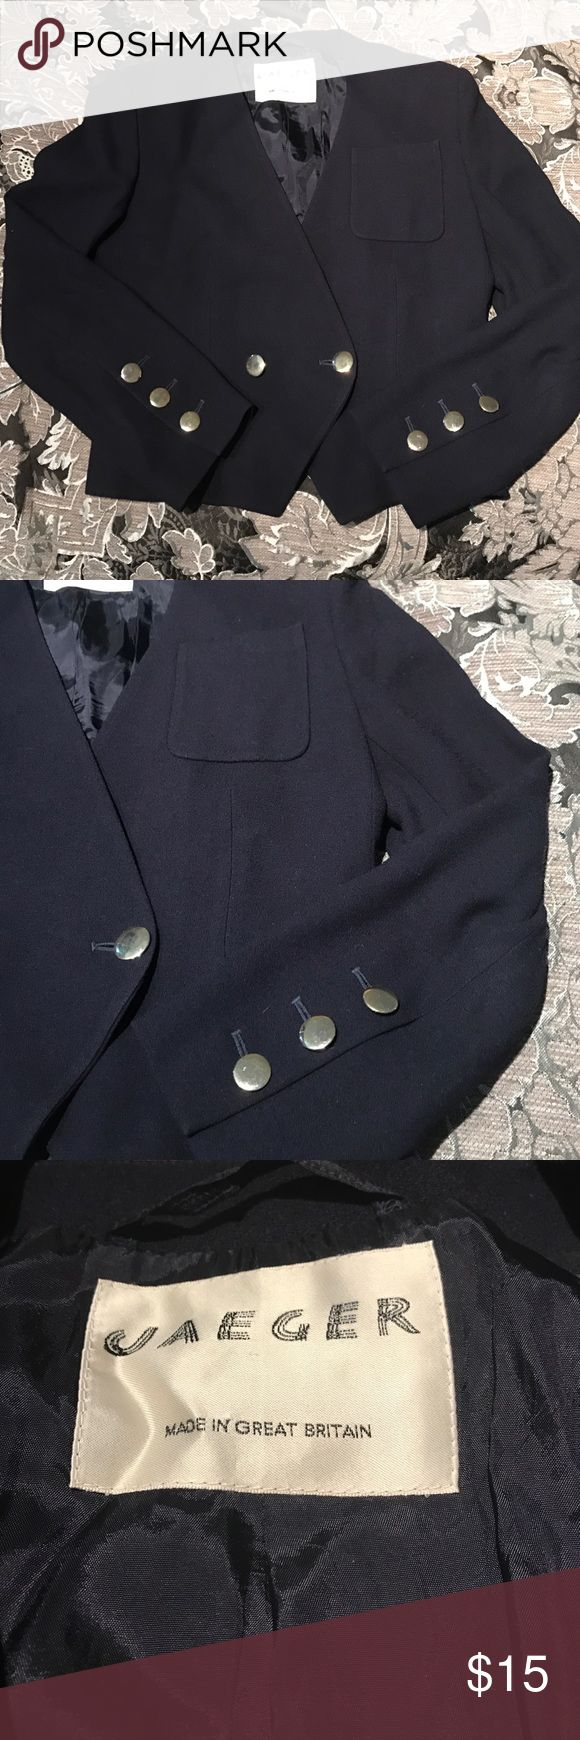 Vintage Navy Blue Blazer made in Great Britain Beautifully cut Navy Blue Blazer. 100%  Pure New Wool. USA size 8. Bust 34 in/Hip 36 in Jaeger Jackets & Coats Blazers